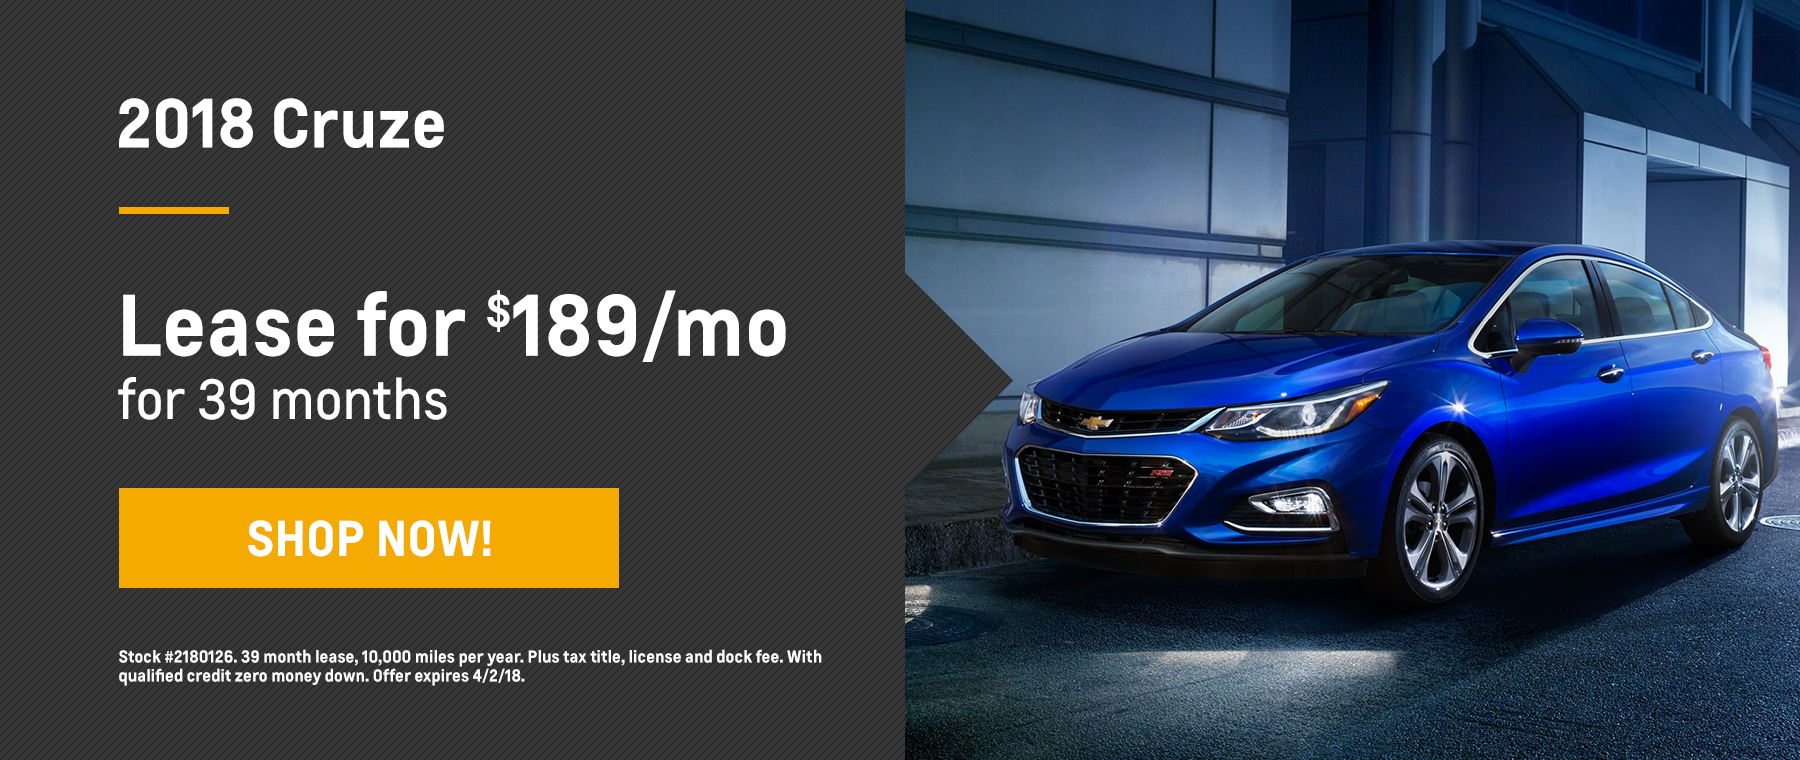 Cruze Biggers Chevy March Offer Homepage